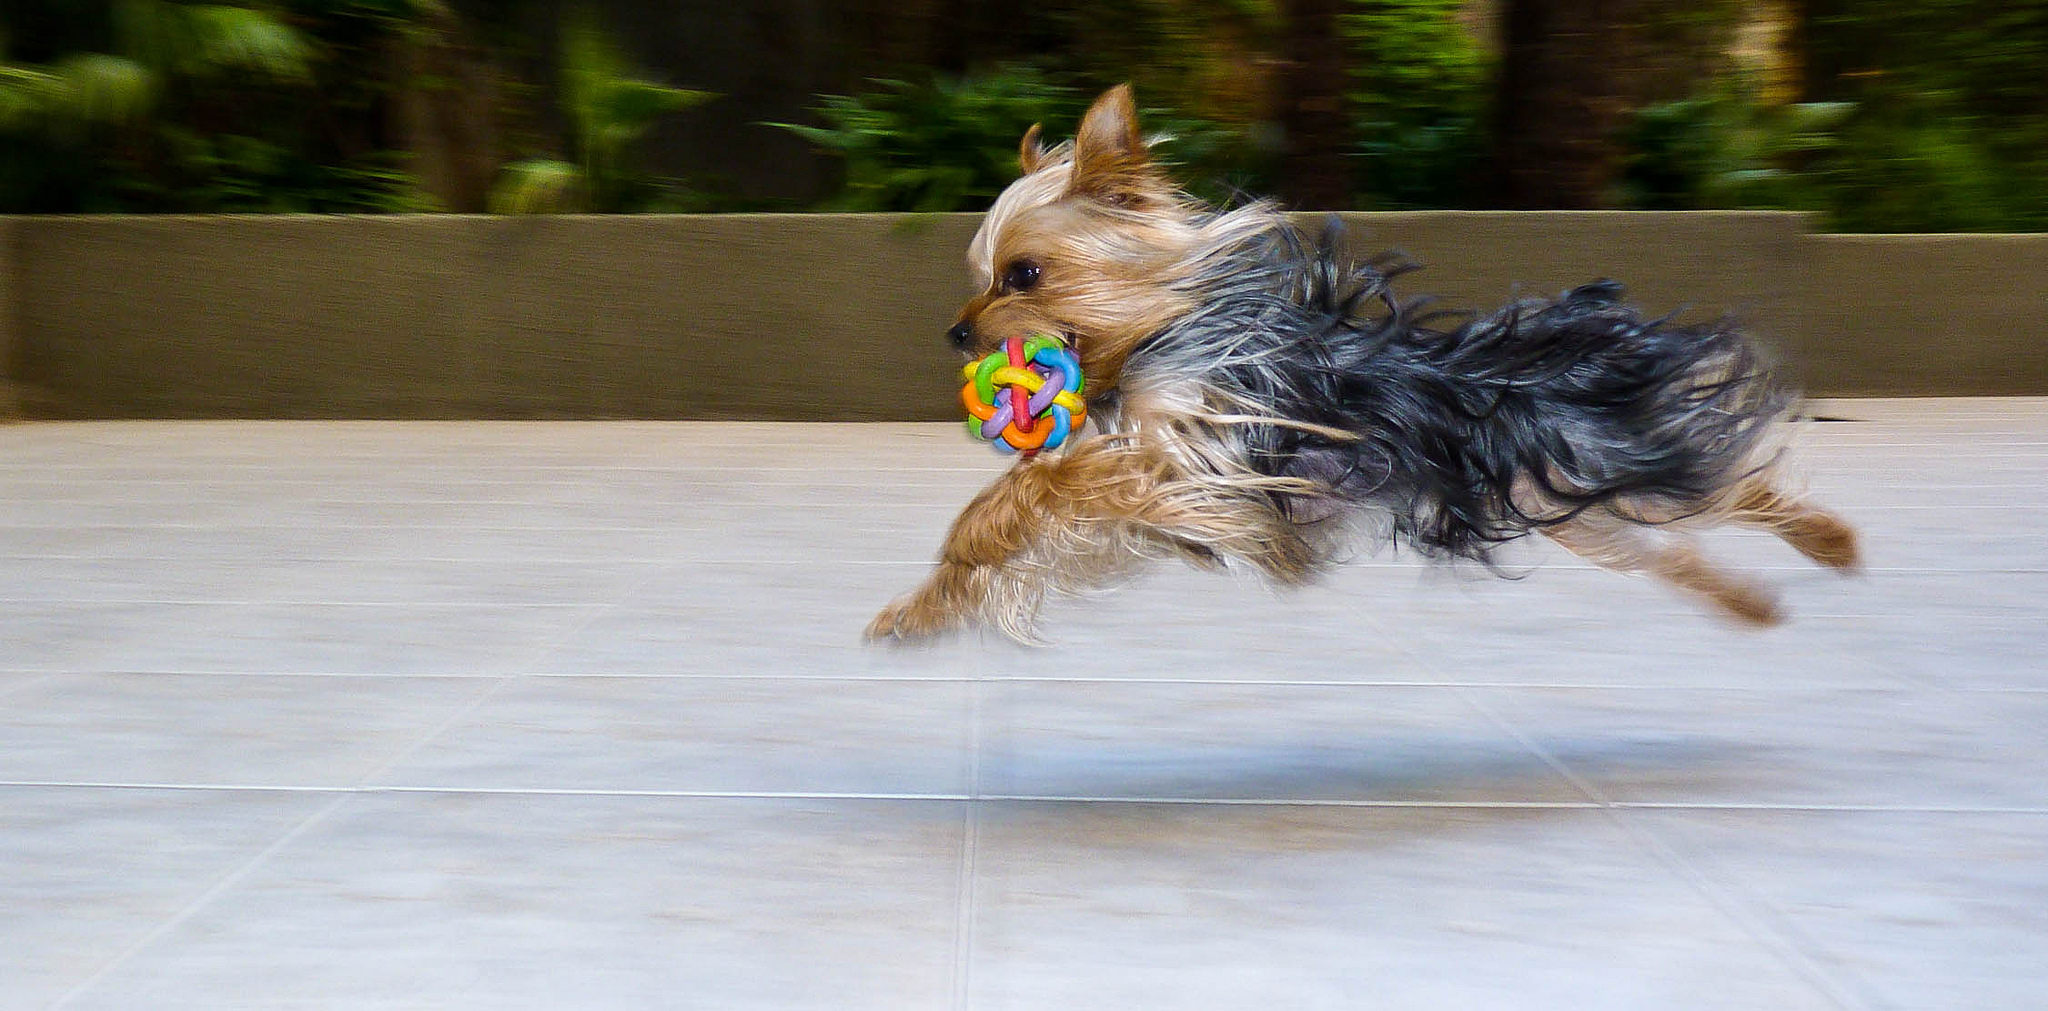 10 Yorkies Too Small To Be Believed The Dog People By Rovercom